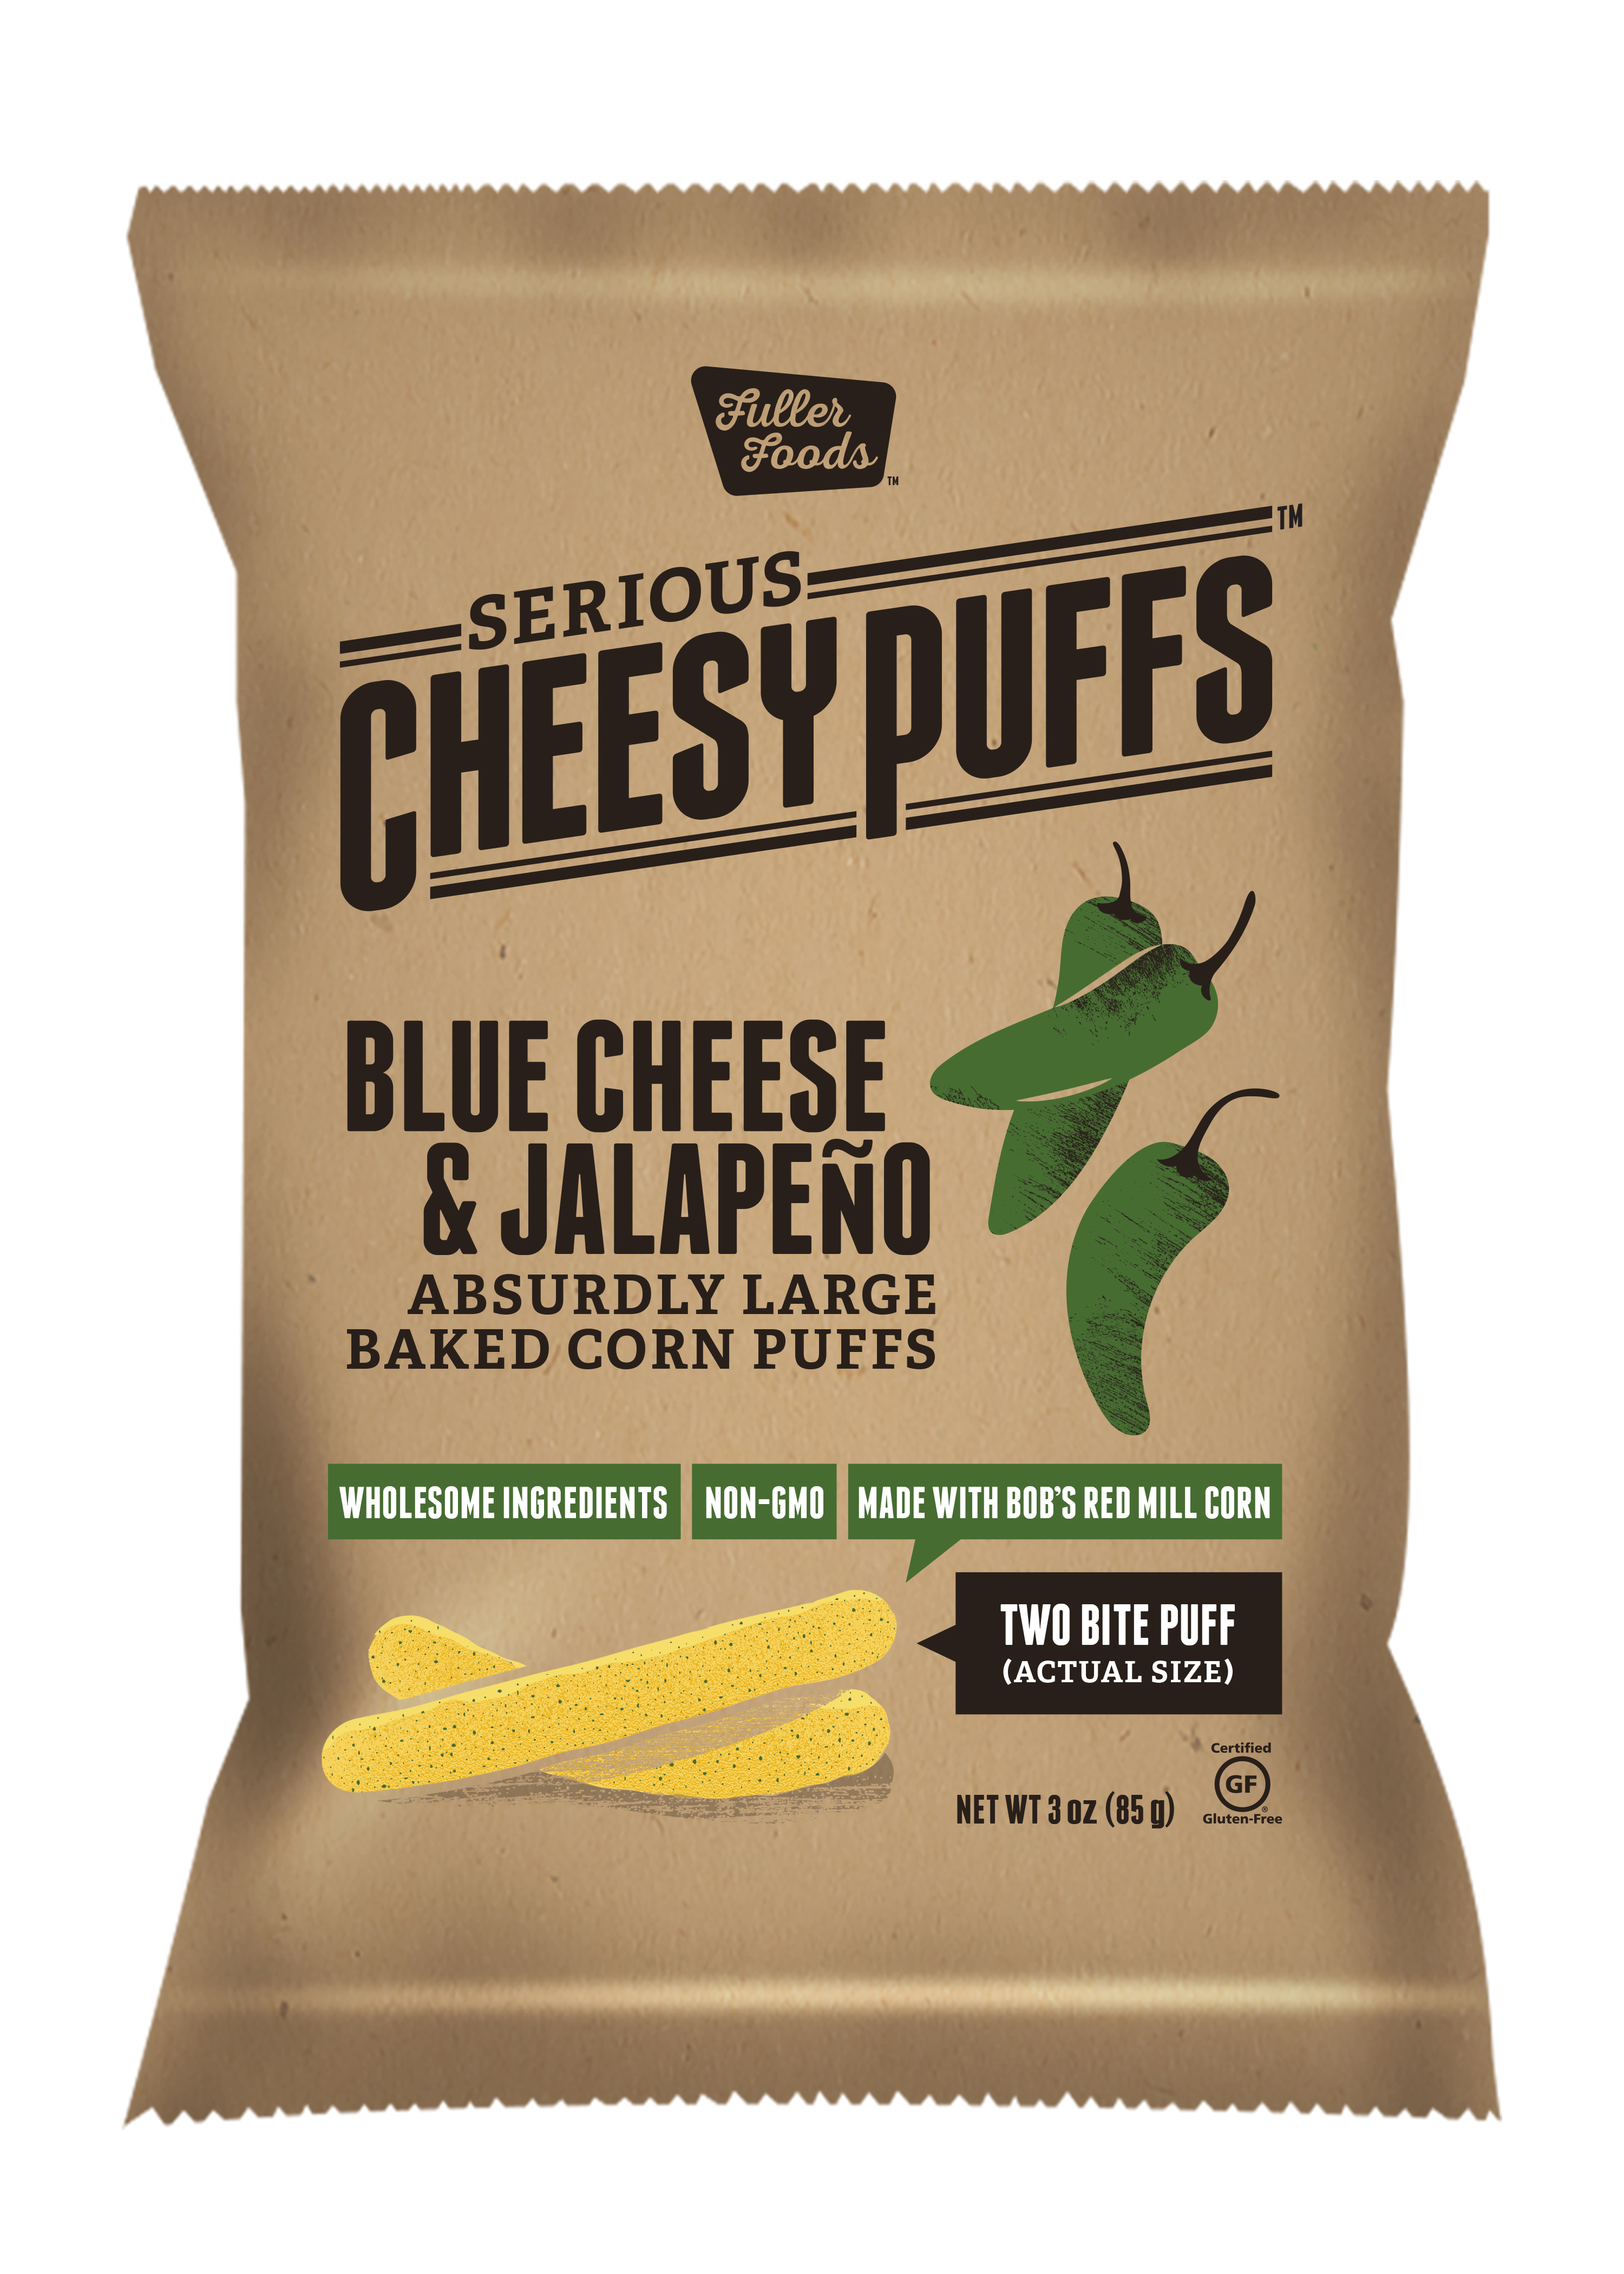 BLUE CHEESE JALAPENO CHEESE PUFFS